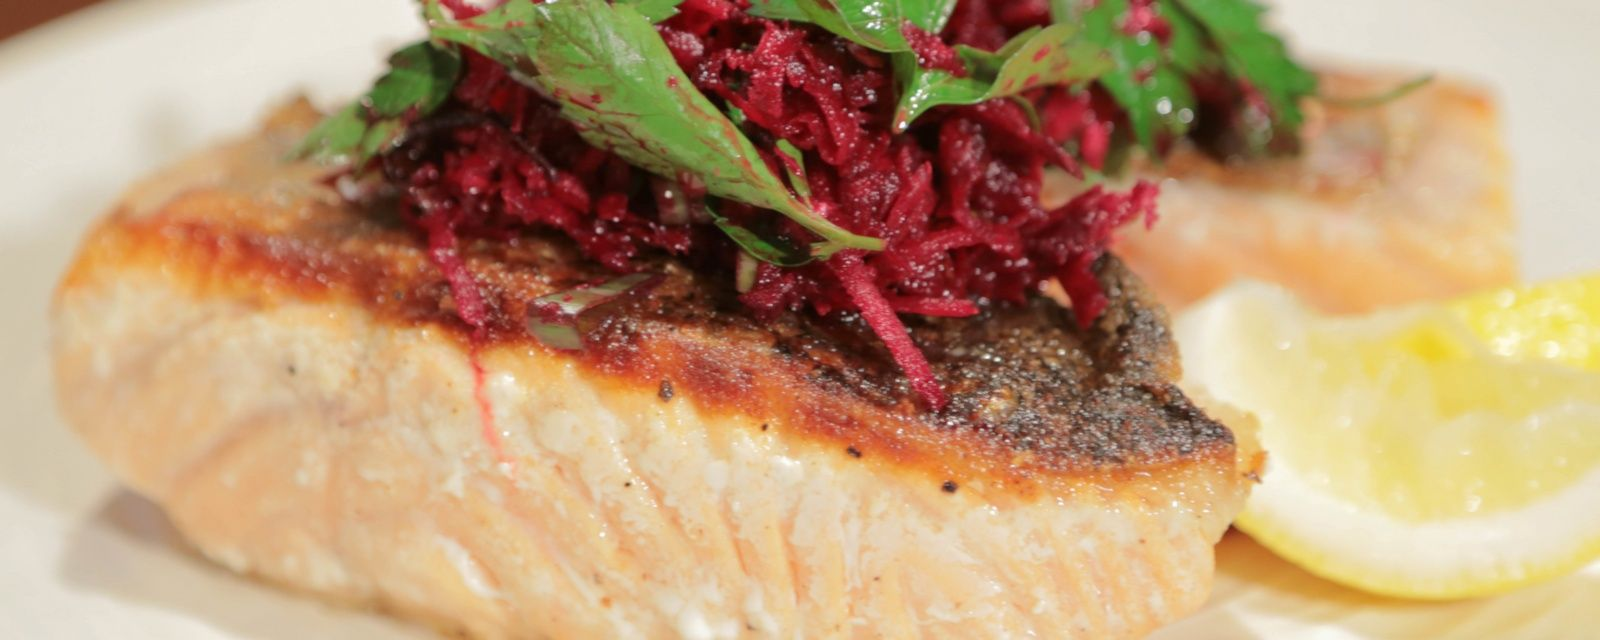 Salmon with beet salad, add a little less horse-radish next time. -SBW